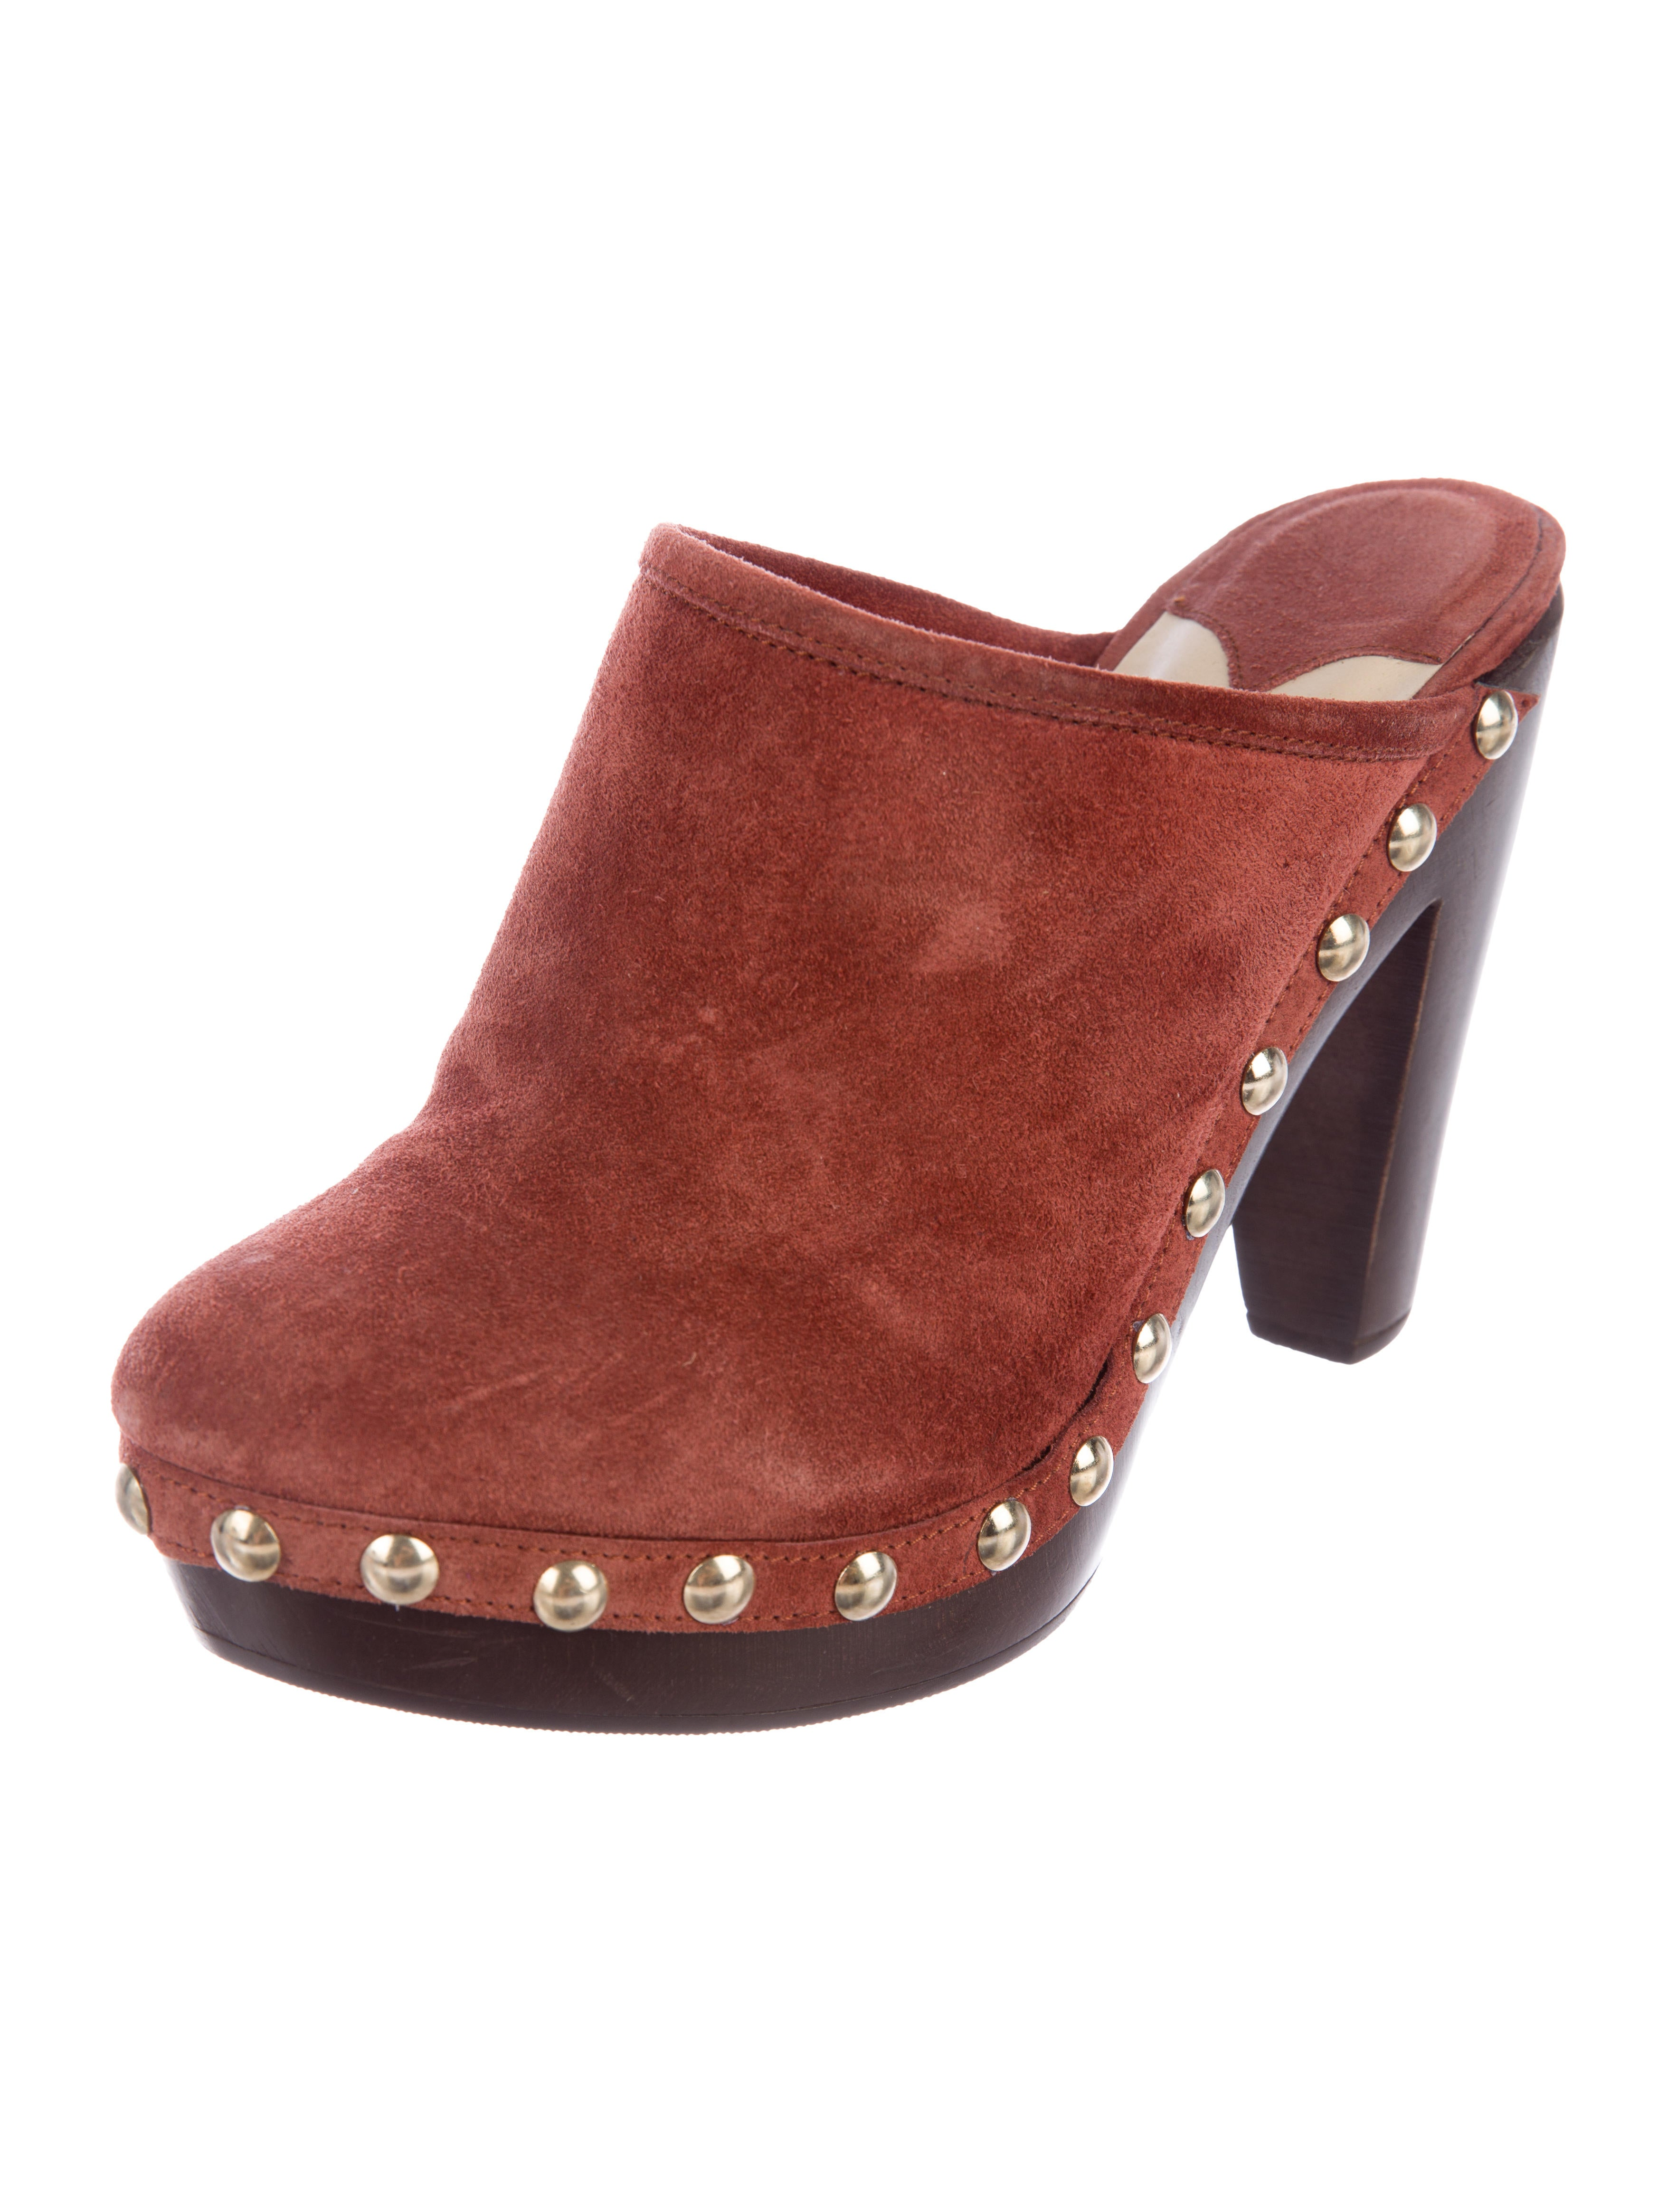 Jimmy Choo Utmost Suede Clogs shopping online clearance CCWvpxEFo